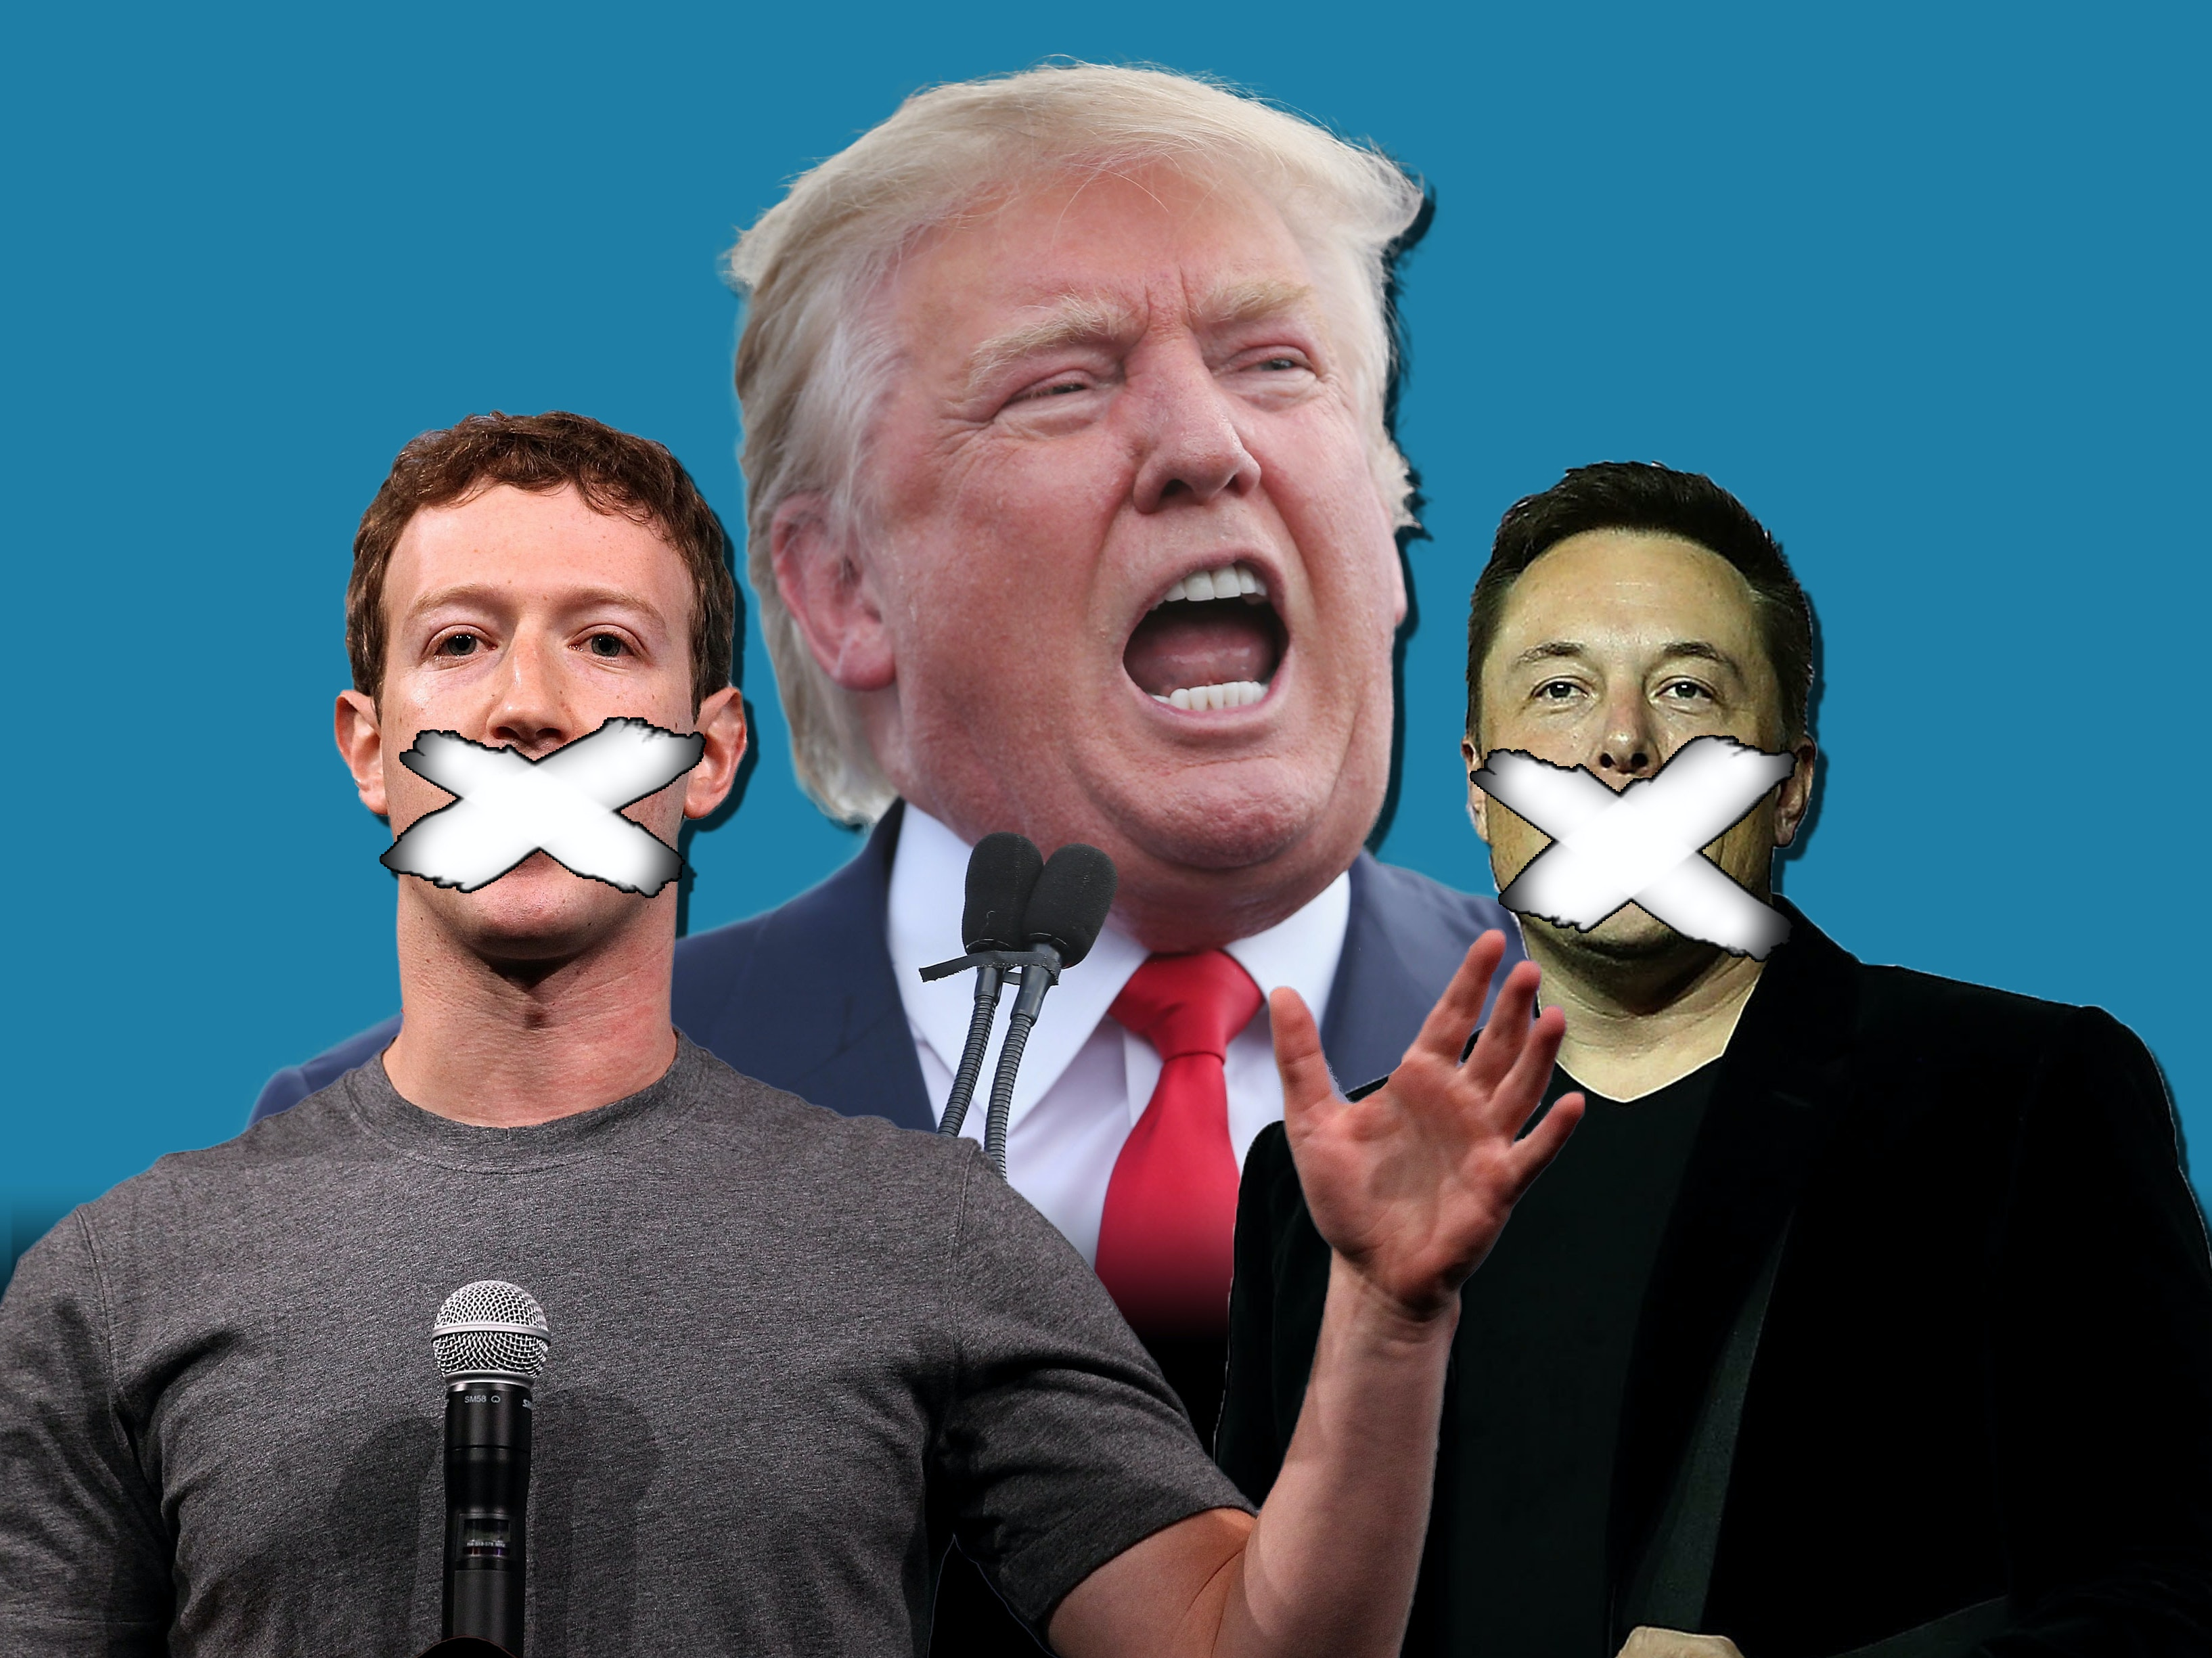 Major Silicon Valley Players Are Staying Quiet About Trump's Win